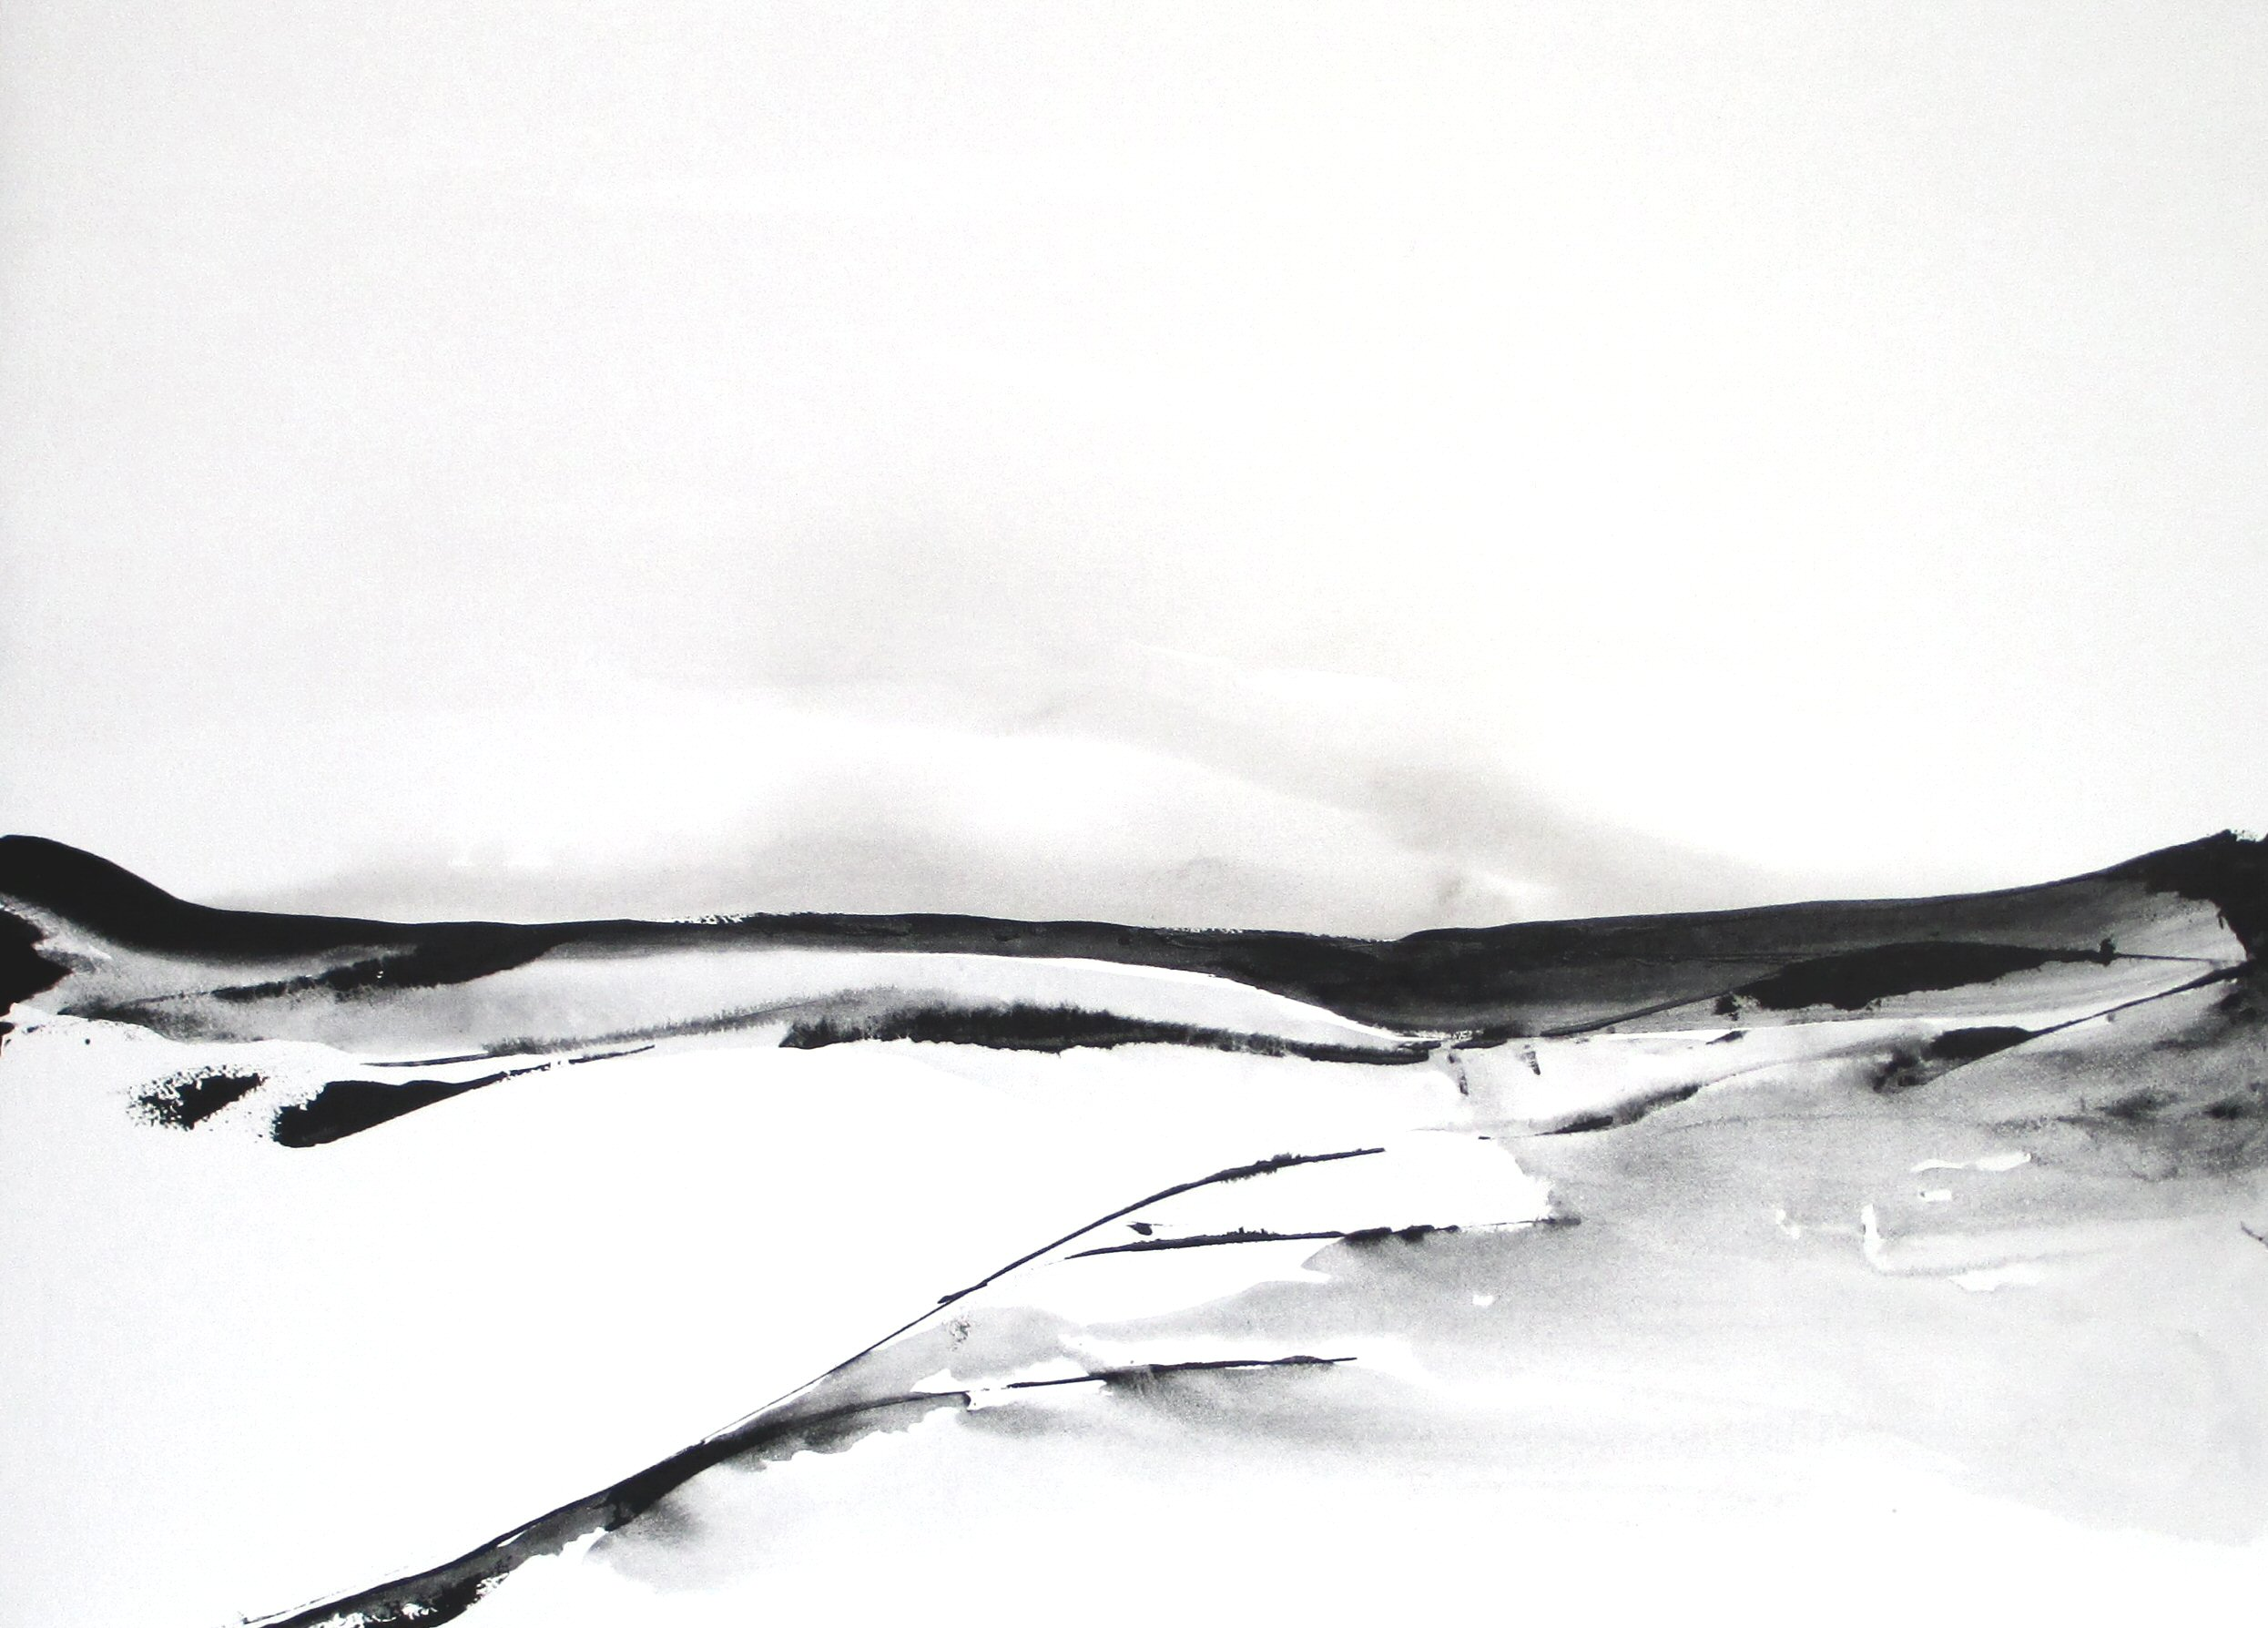 original black and white abstract landscape watercolor